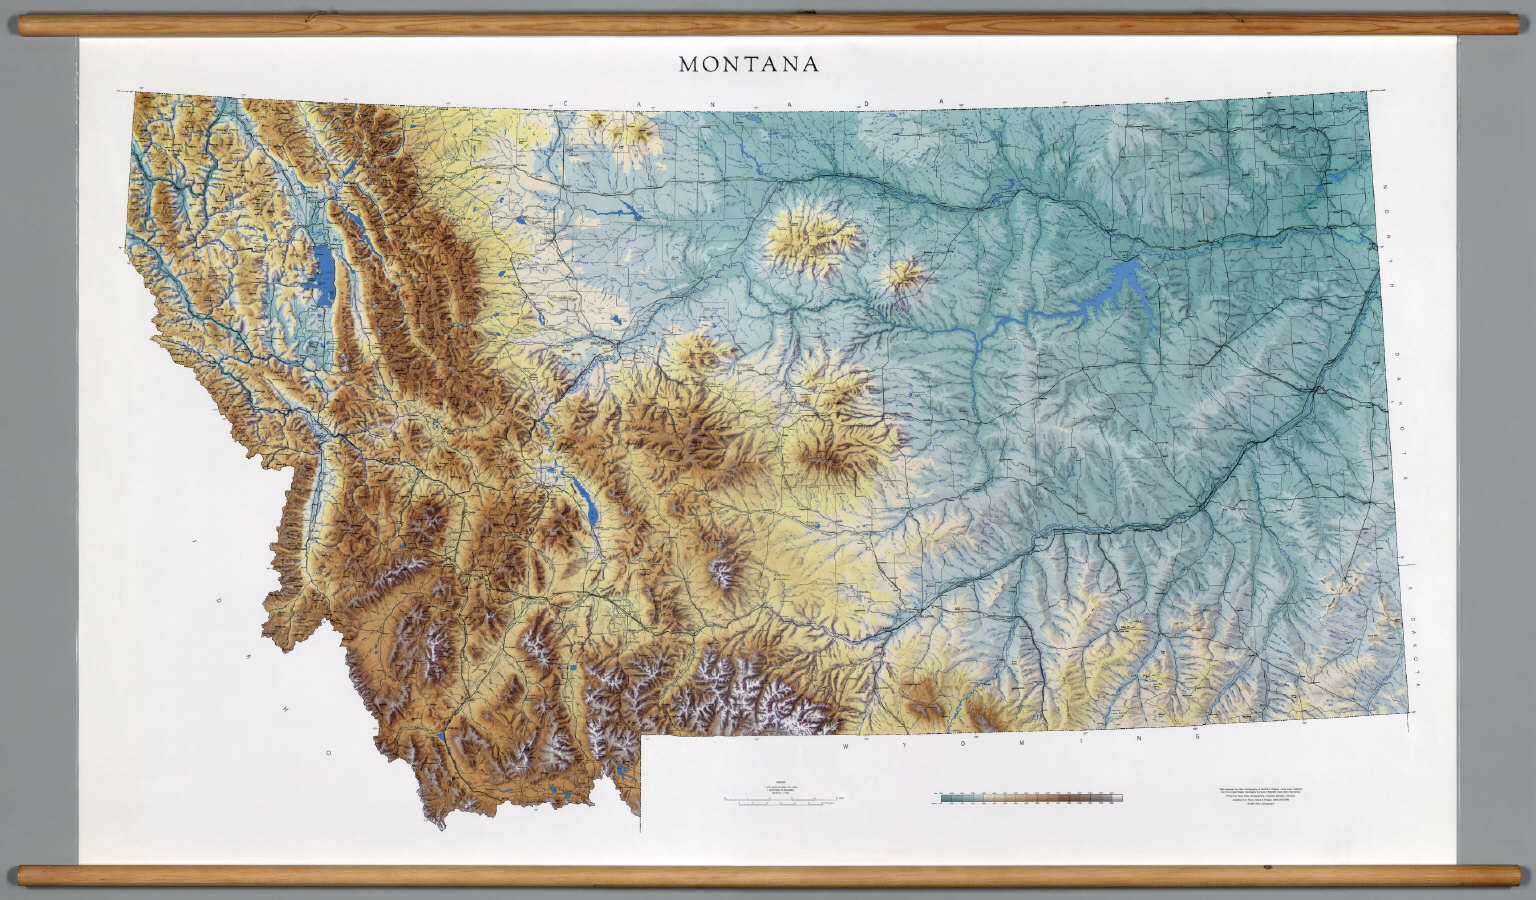 Montana Physical David Rumsey Historical Map Collection - Montana blank physical map